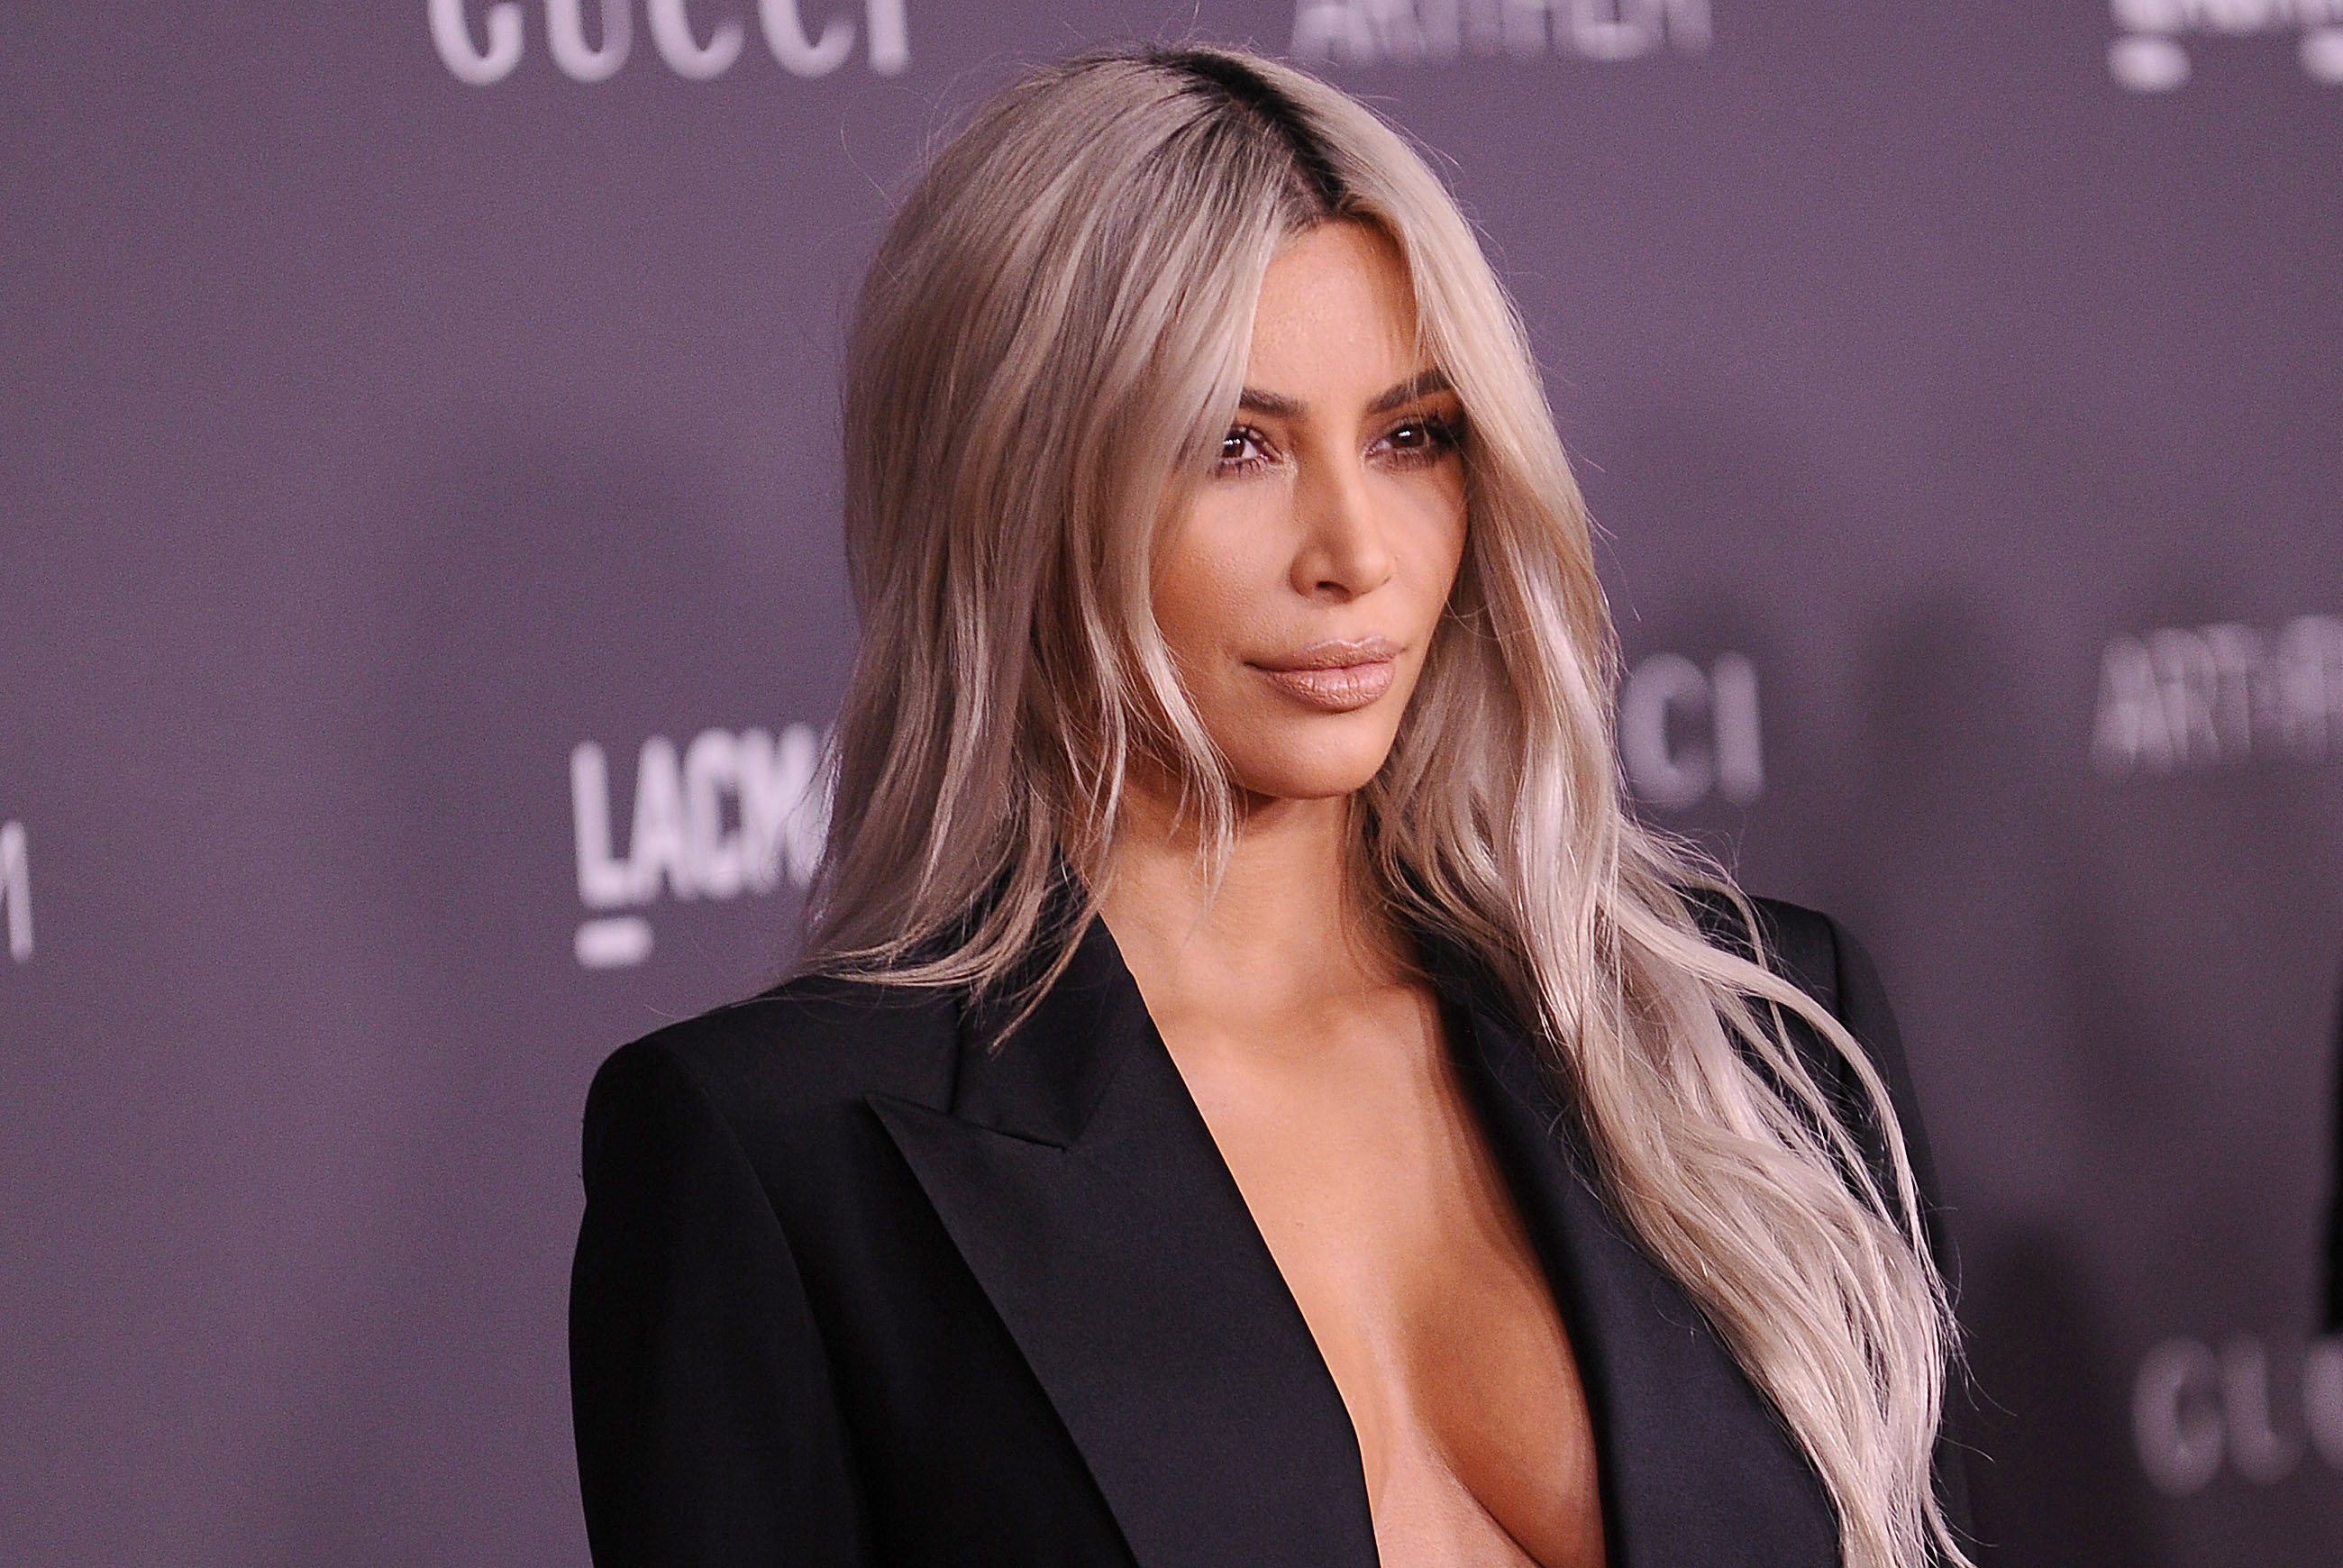 Kim Kardashian is Studying to Take her Bar Exam in 2022